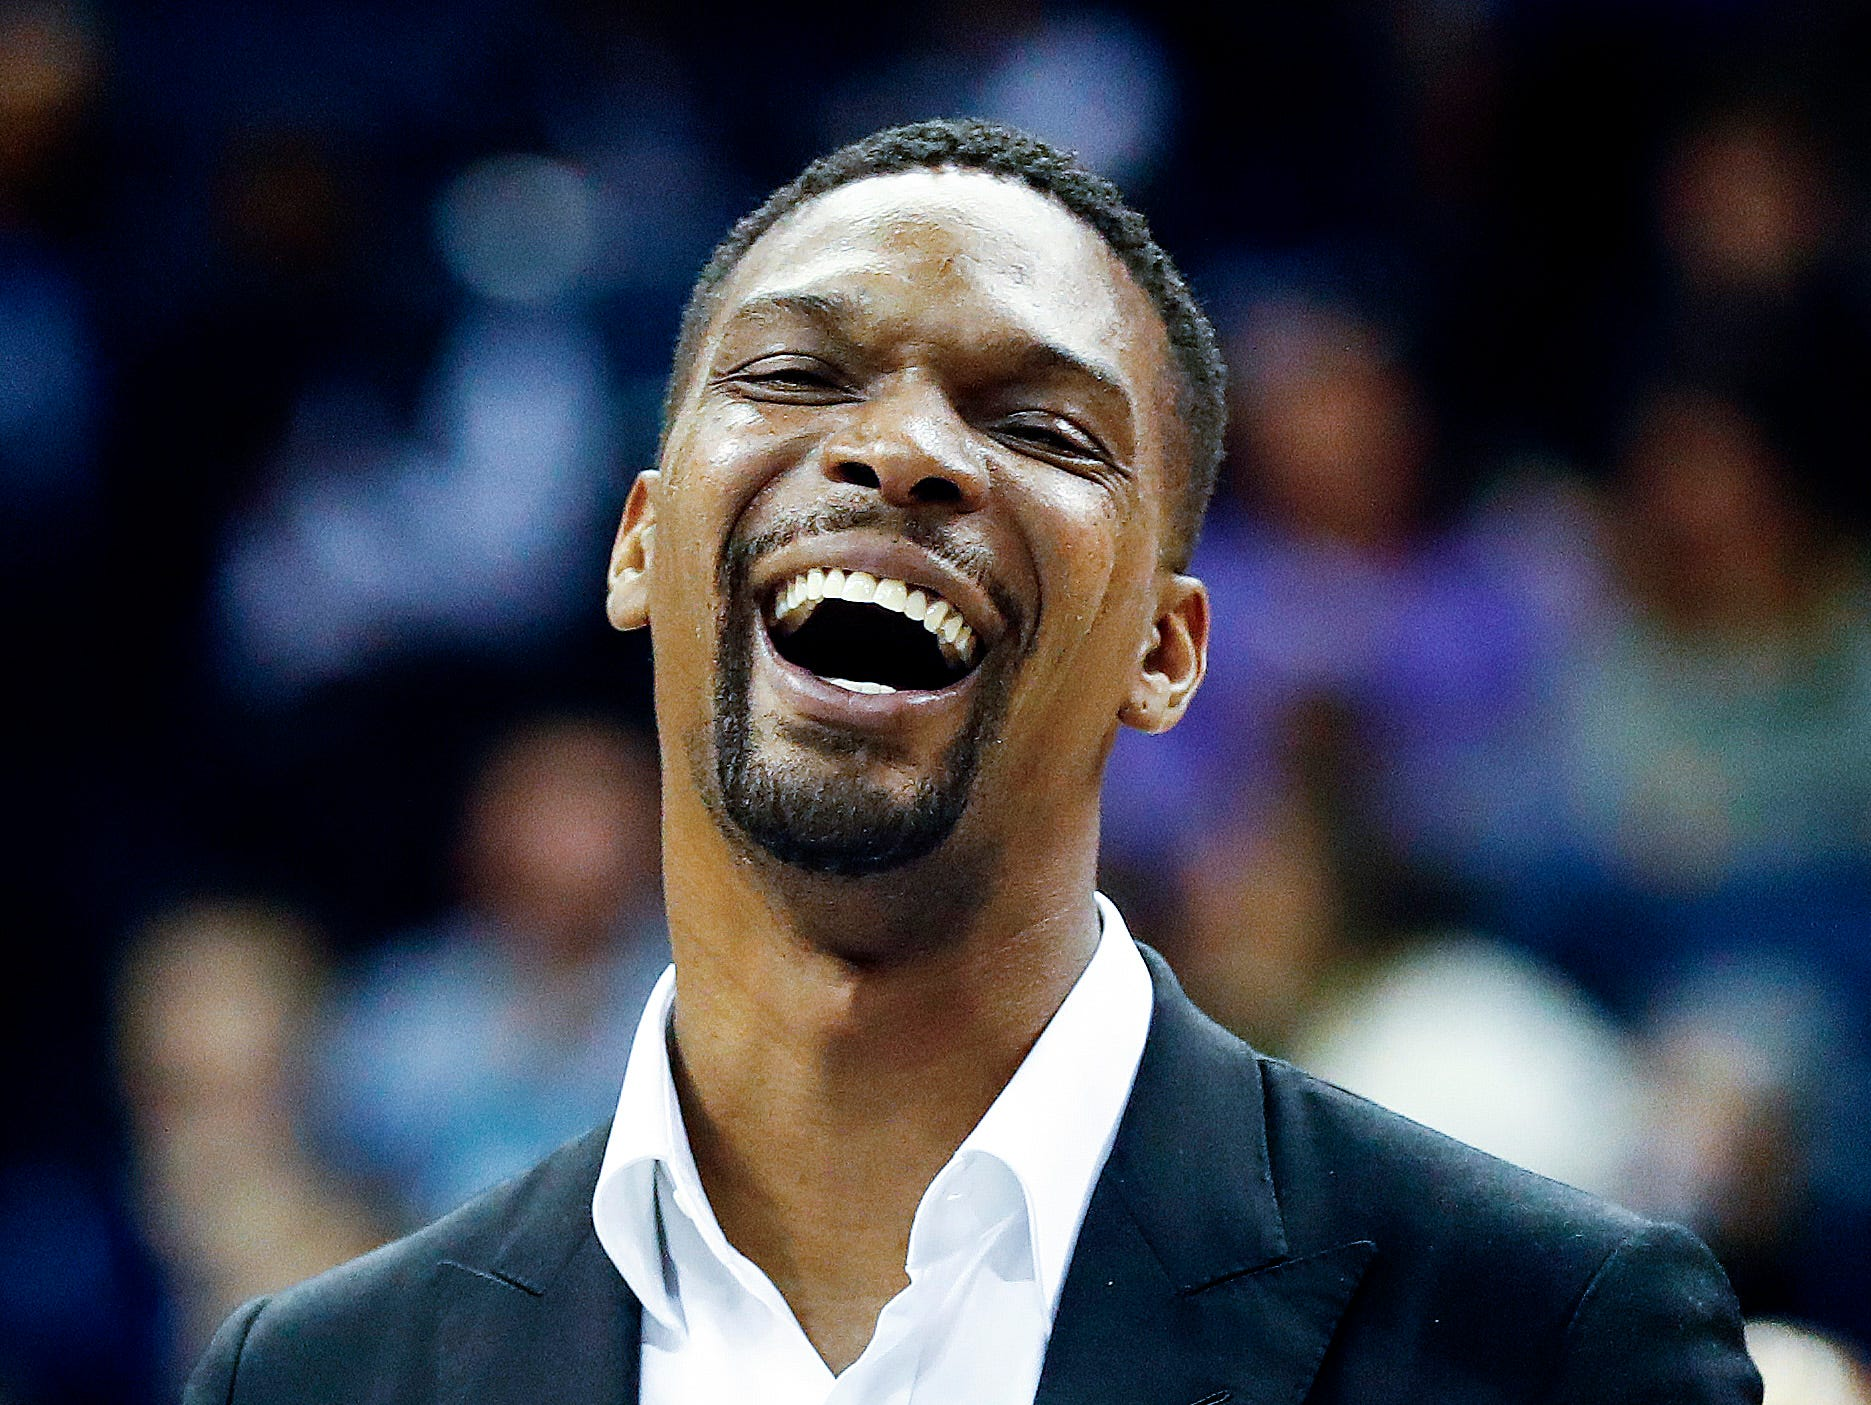 Former NBA player Chris Bosh receives the 14th Annual National Civil Rights Museum Sports Legacy Award before the Memphis Grizzlies take on the New Orleans Pelicans at the FedExForum in Memphis, Tenn., Monday, January 21, 2019.